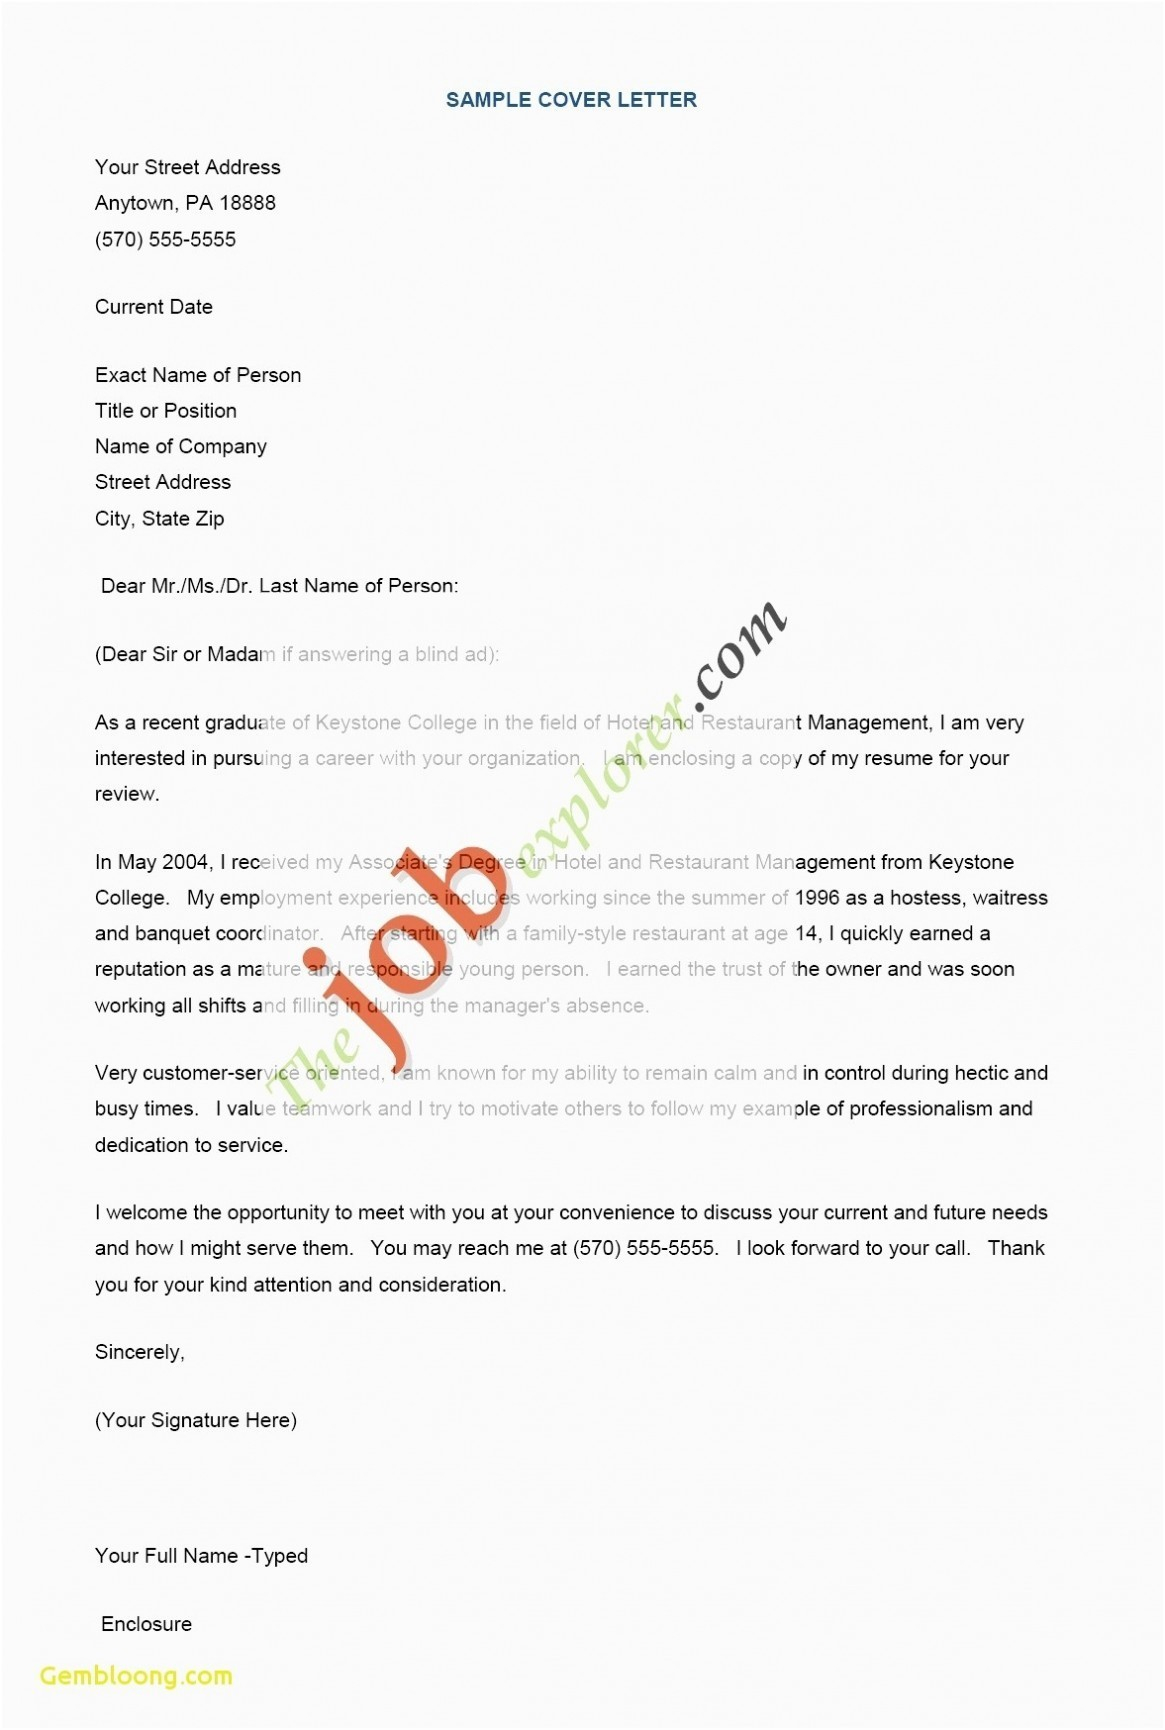 Resumes for Construction Workers - 22 Resume for Construction Worker